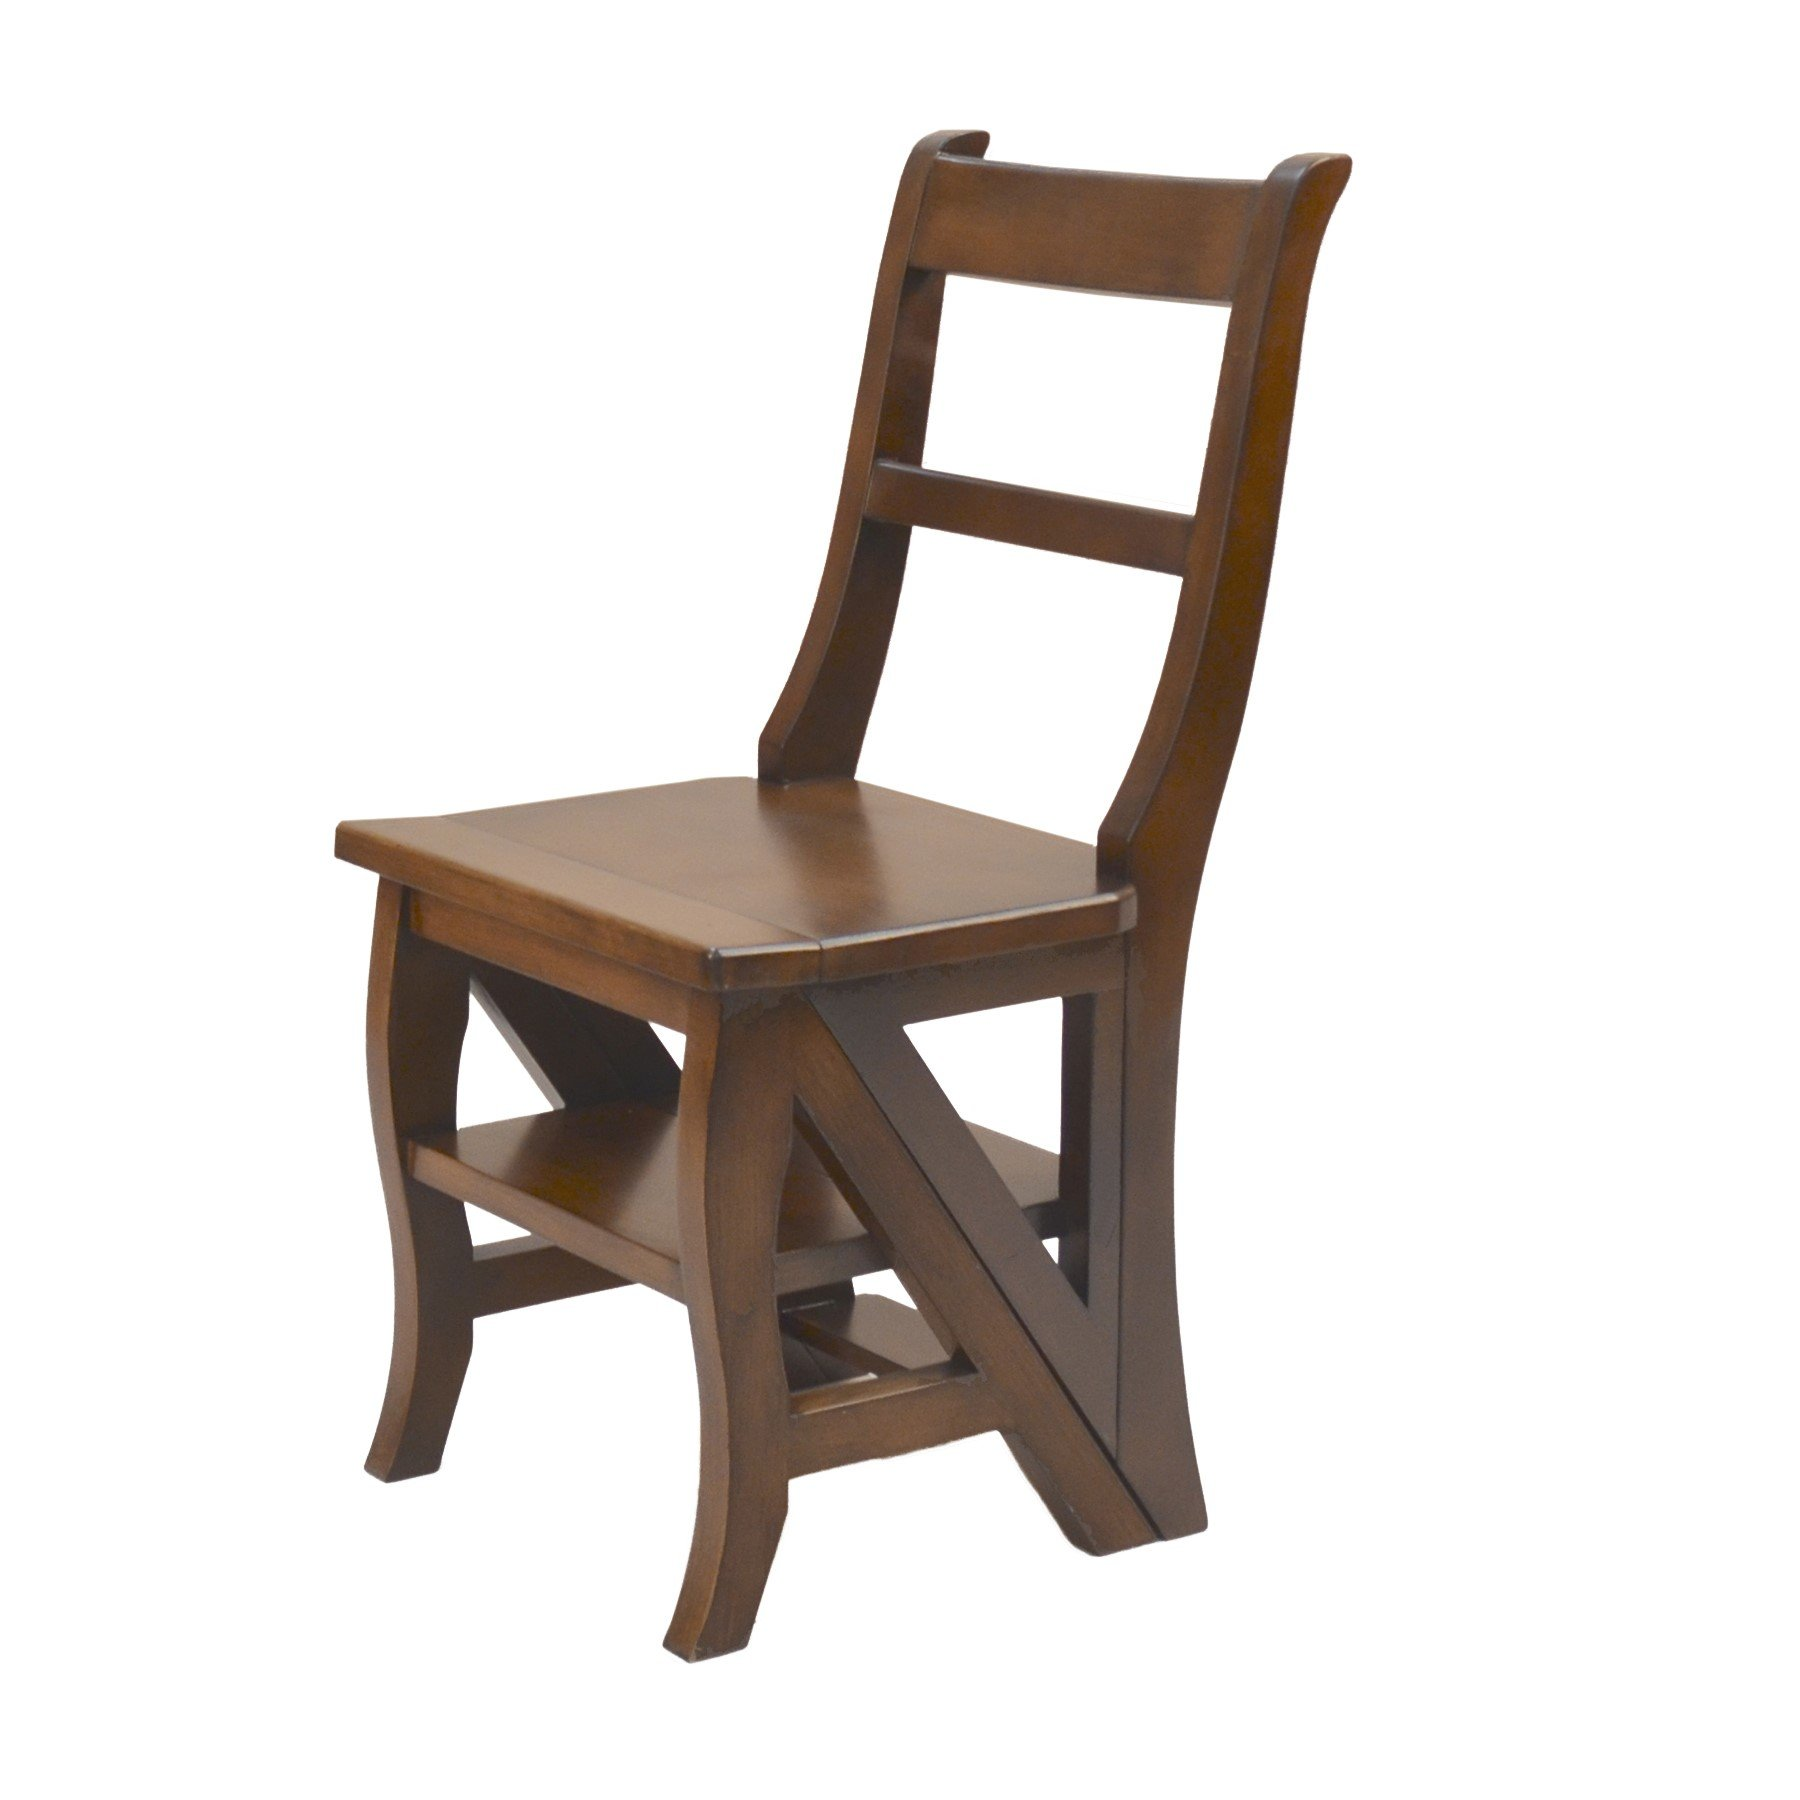 Carolina Chair and Table Benjamin Library Ladder Chair, Chestnut